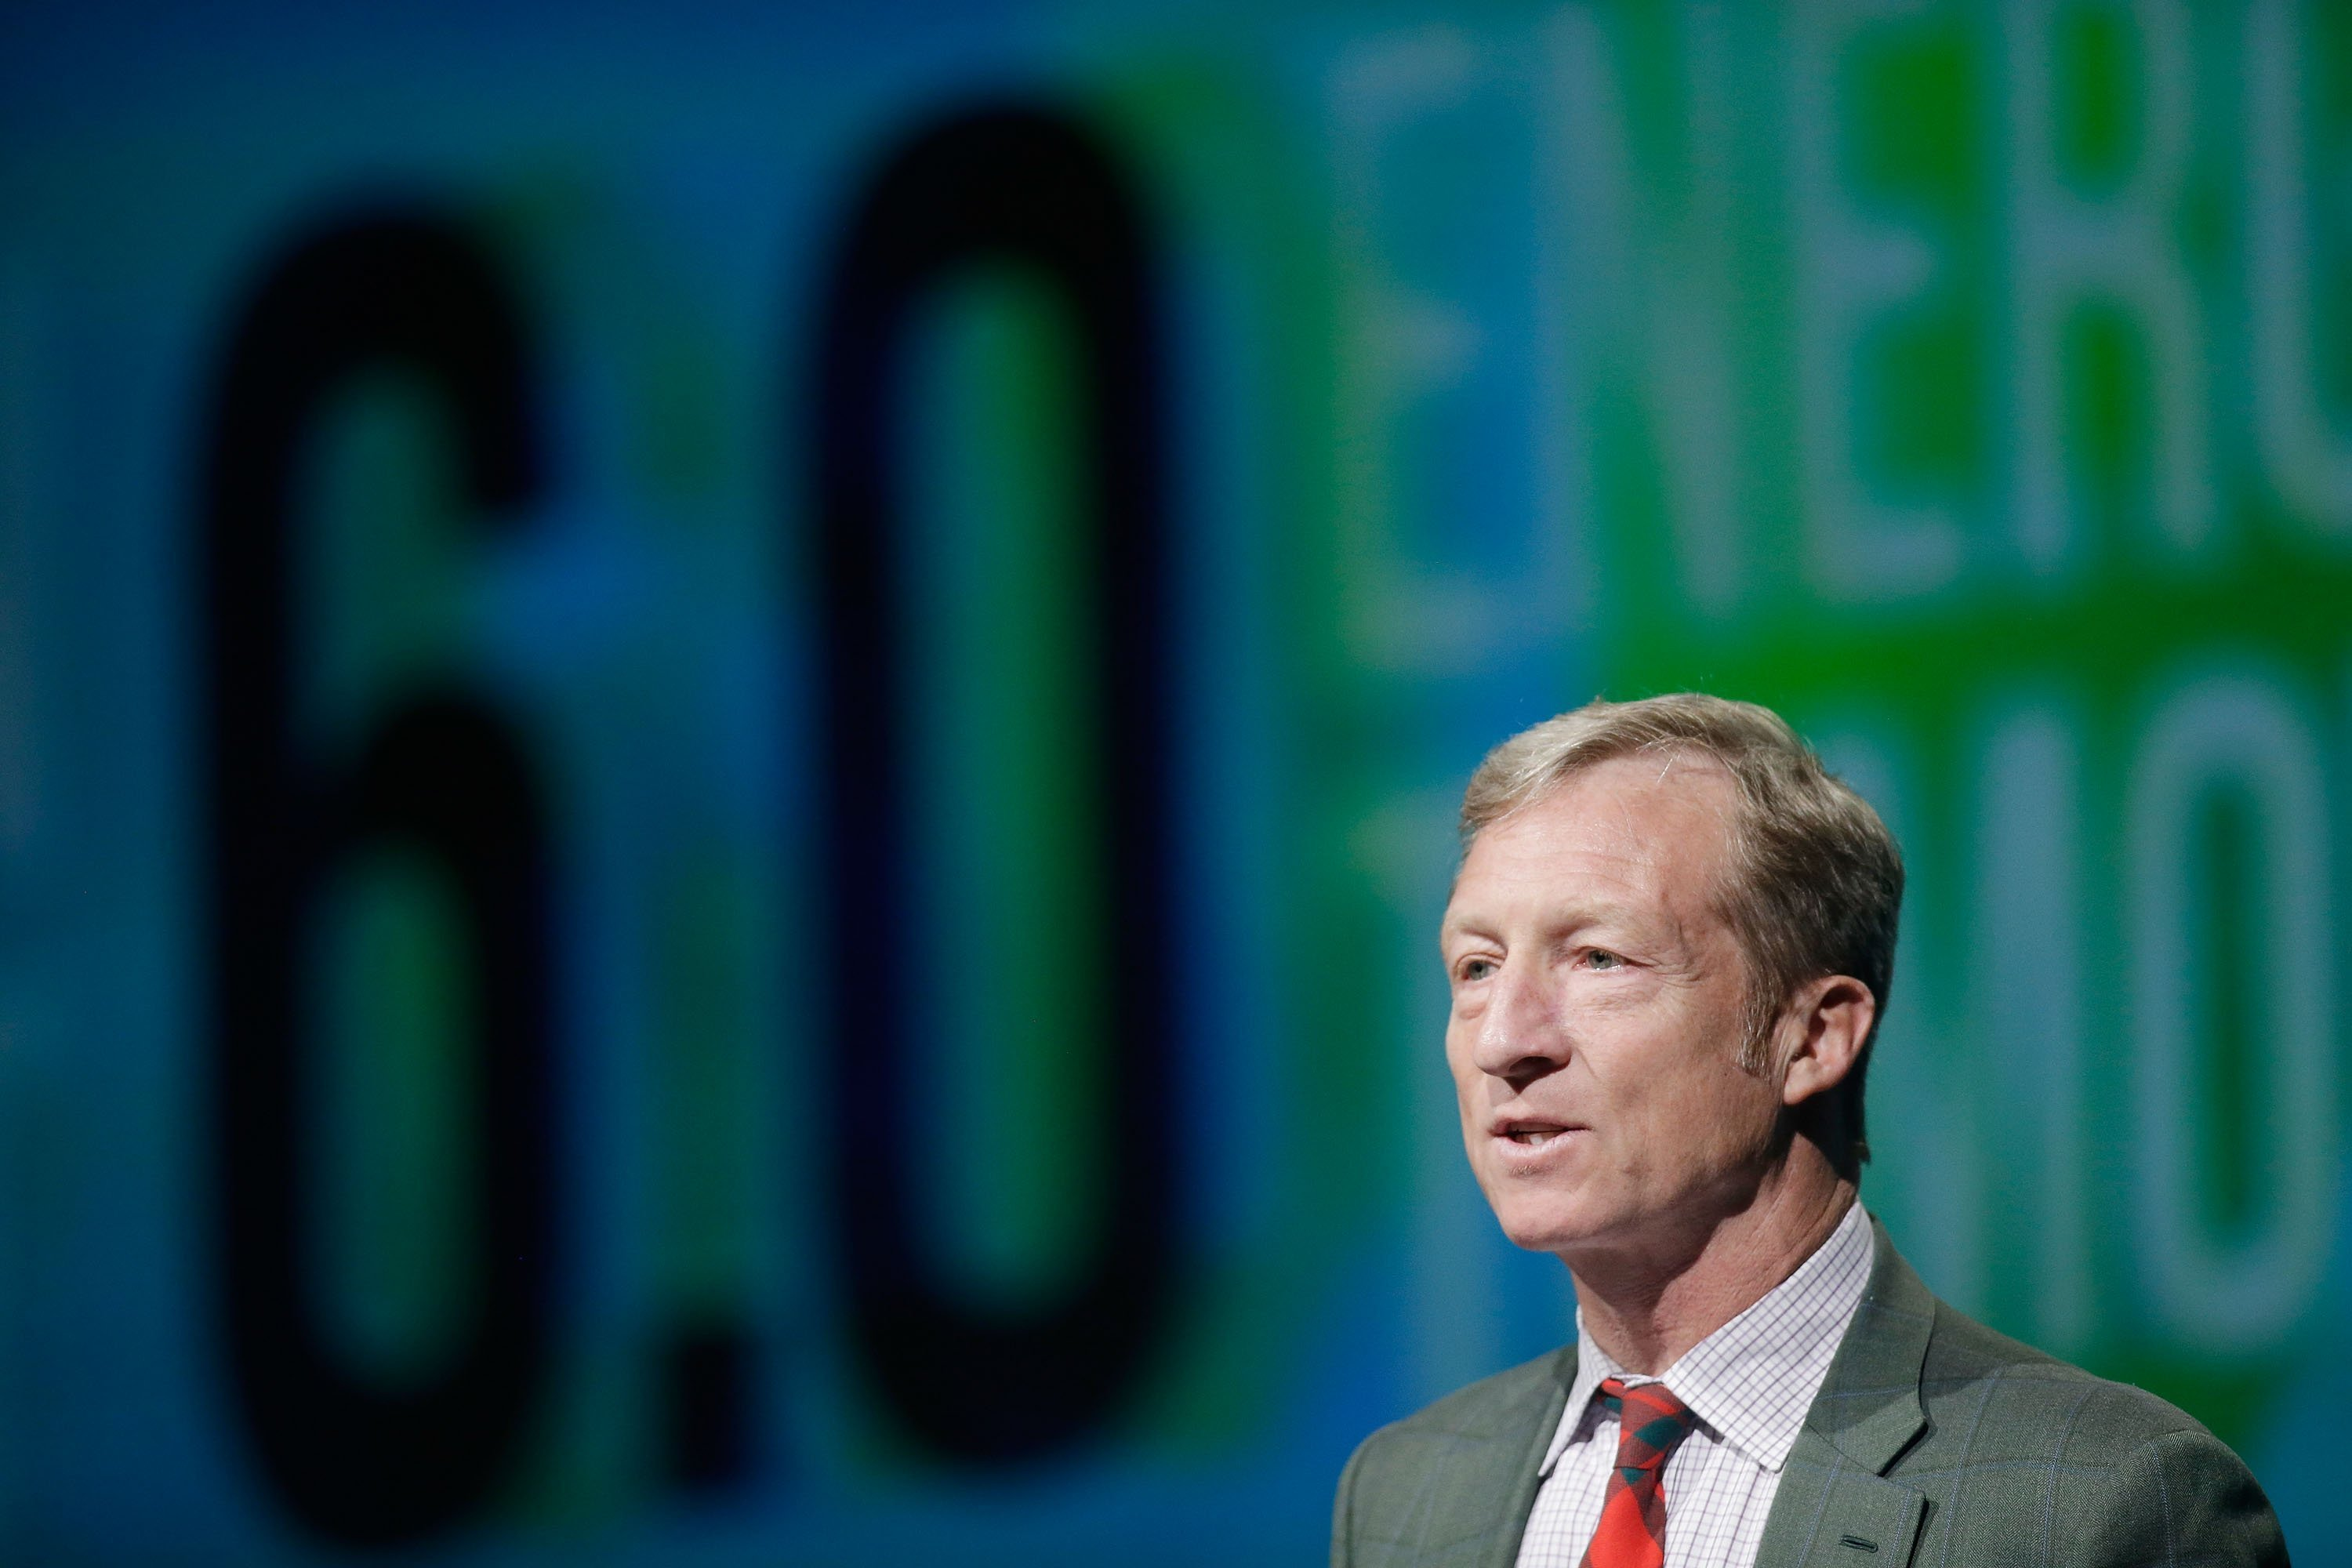 Billionaire Democratic donor Tom Steyer launches nationwide call for Trump's impeachment